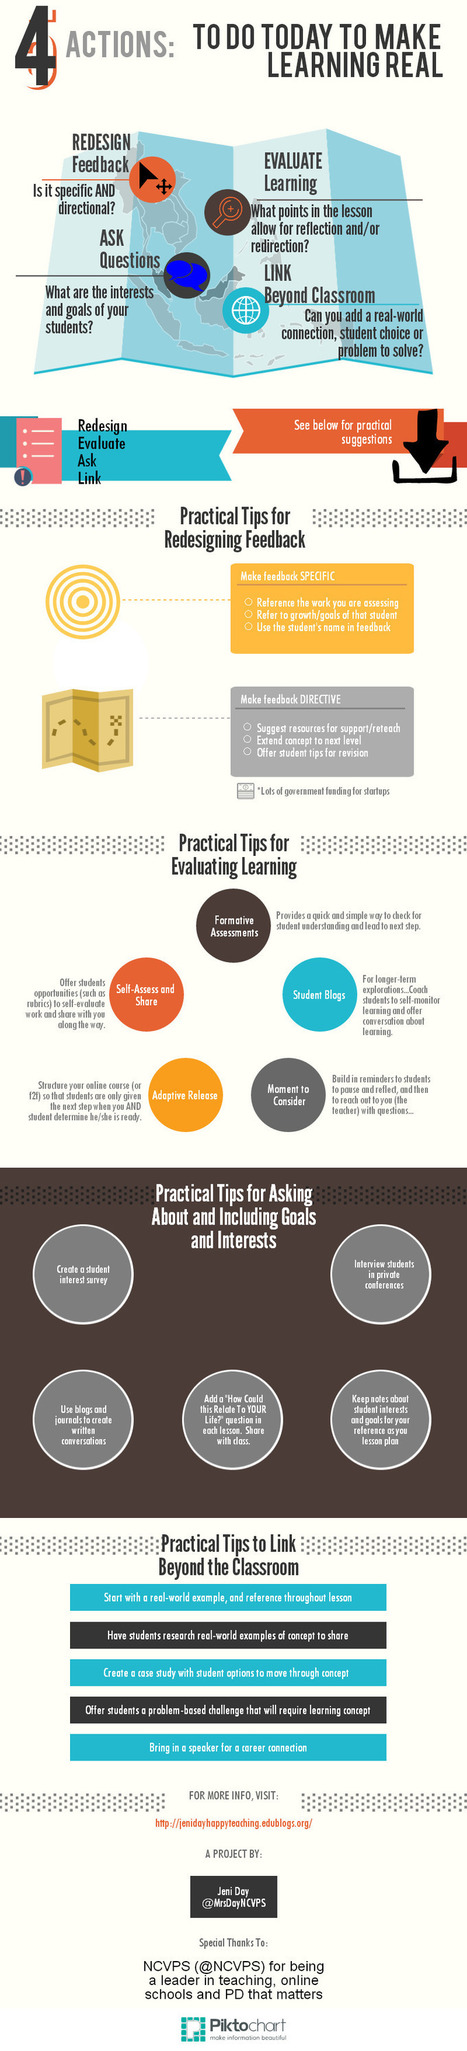 [Infographic] 4 steps to real learning | INFOGRAPHICS & KNOWLEDGE | Scoop.it